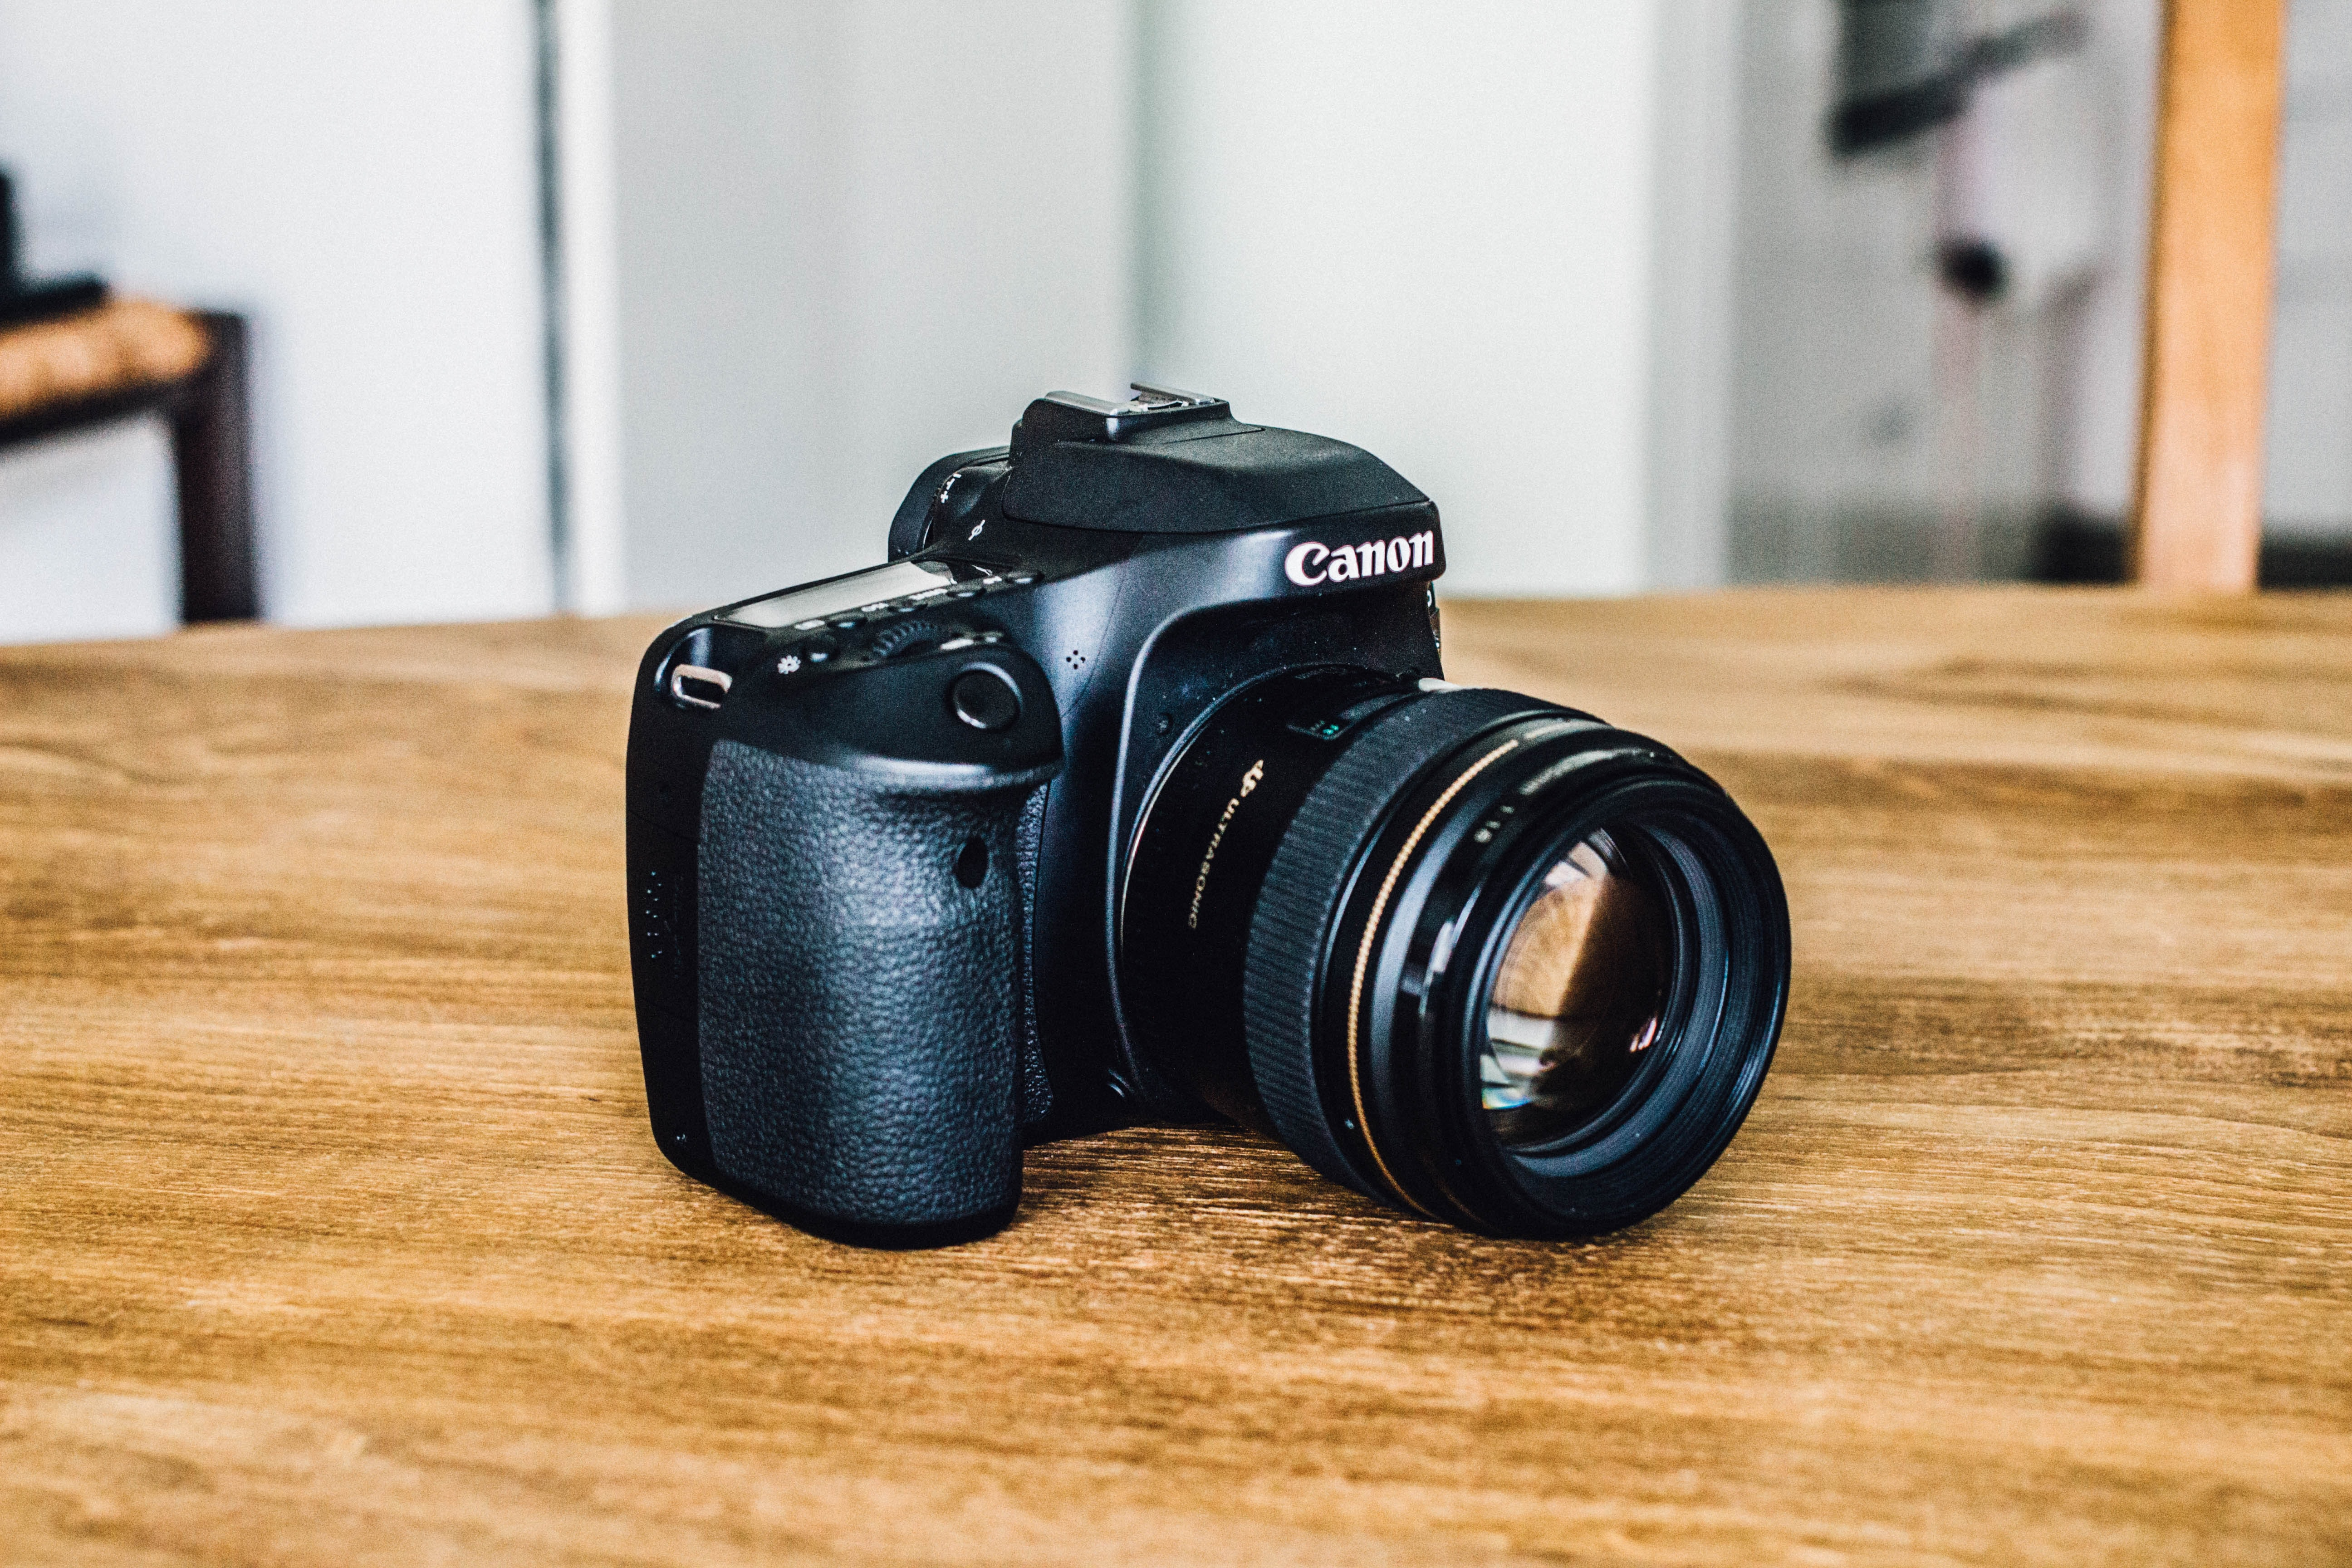 black Canon DSLR camera on wooden surface